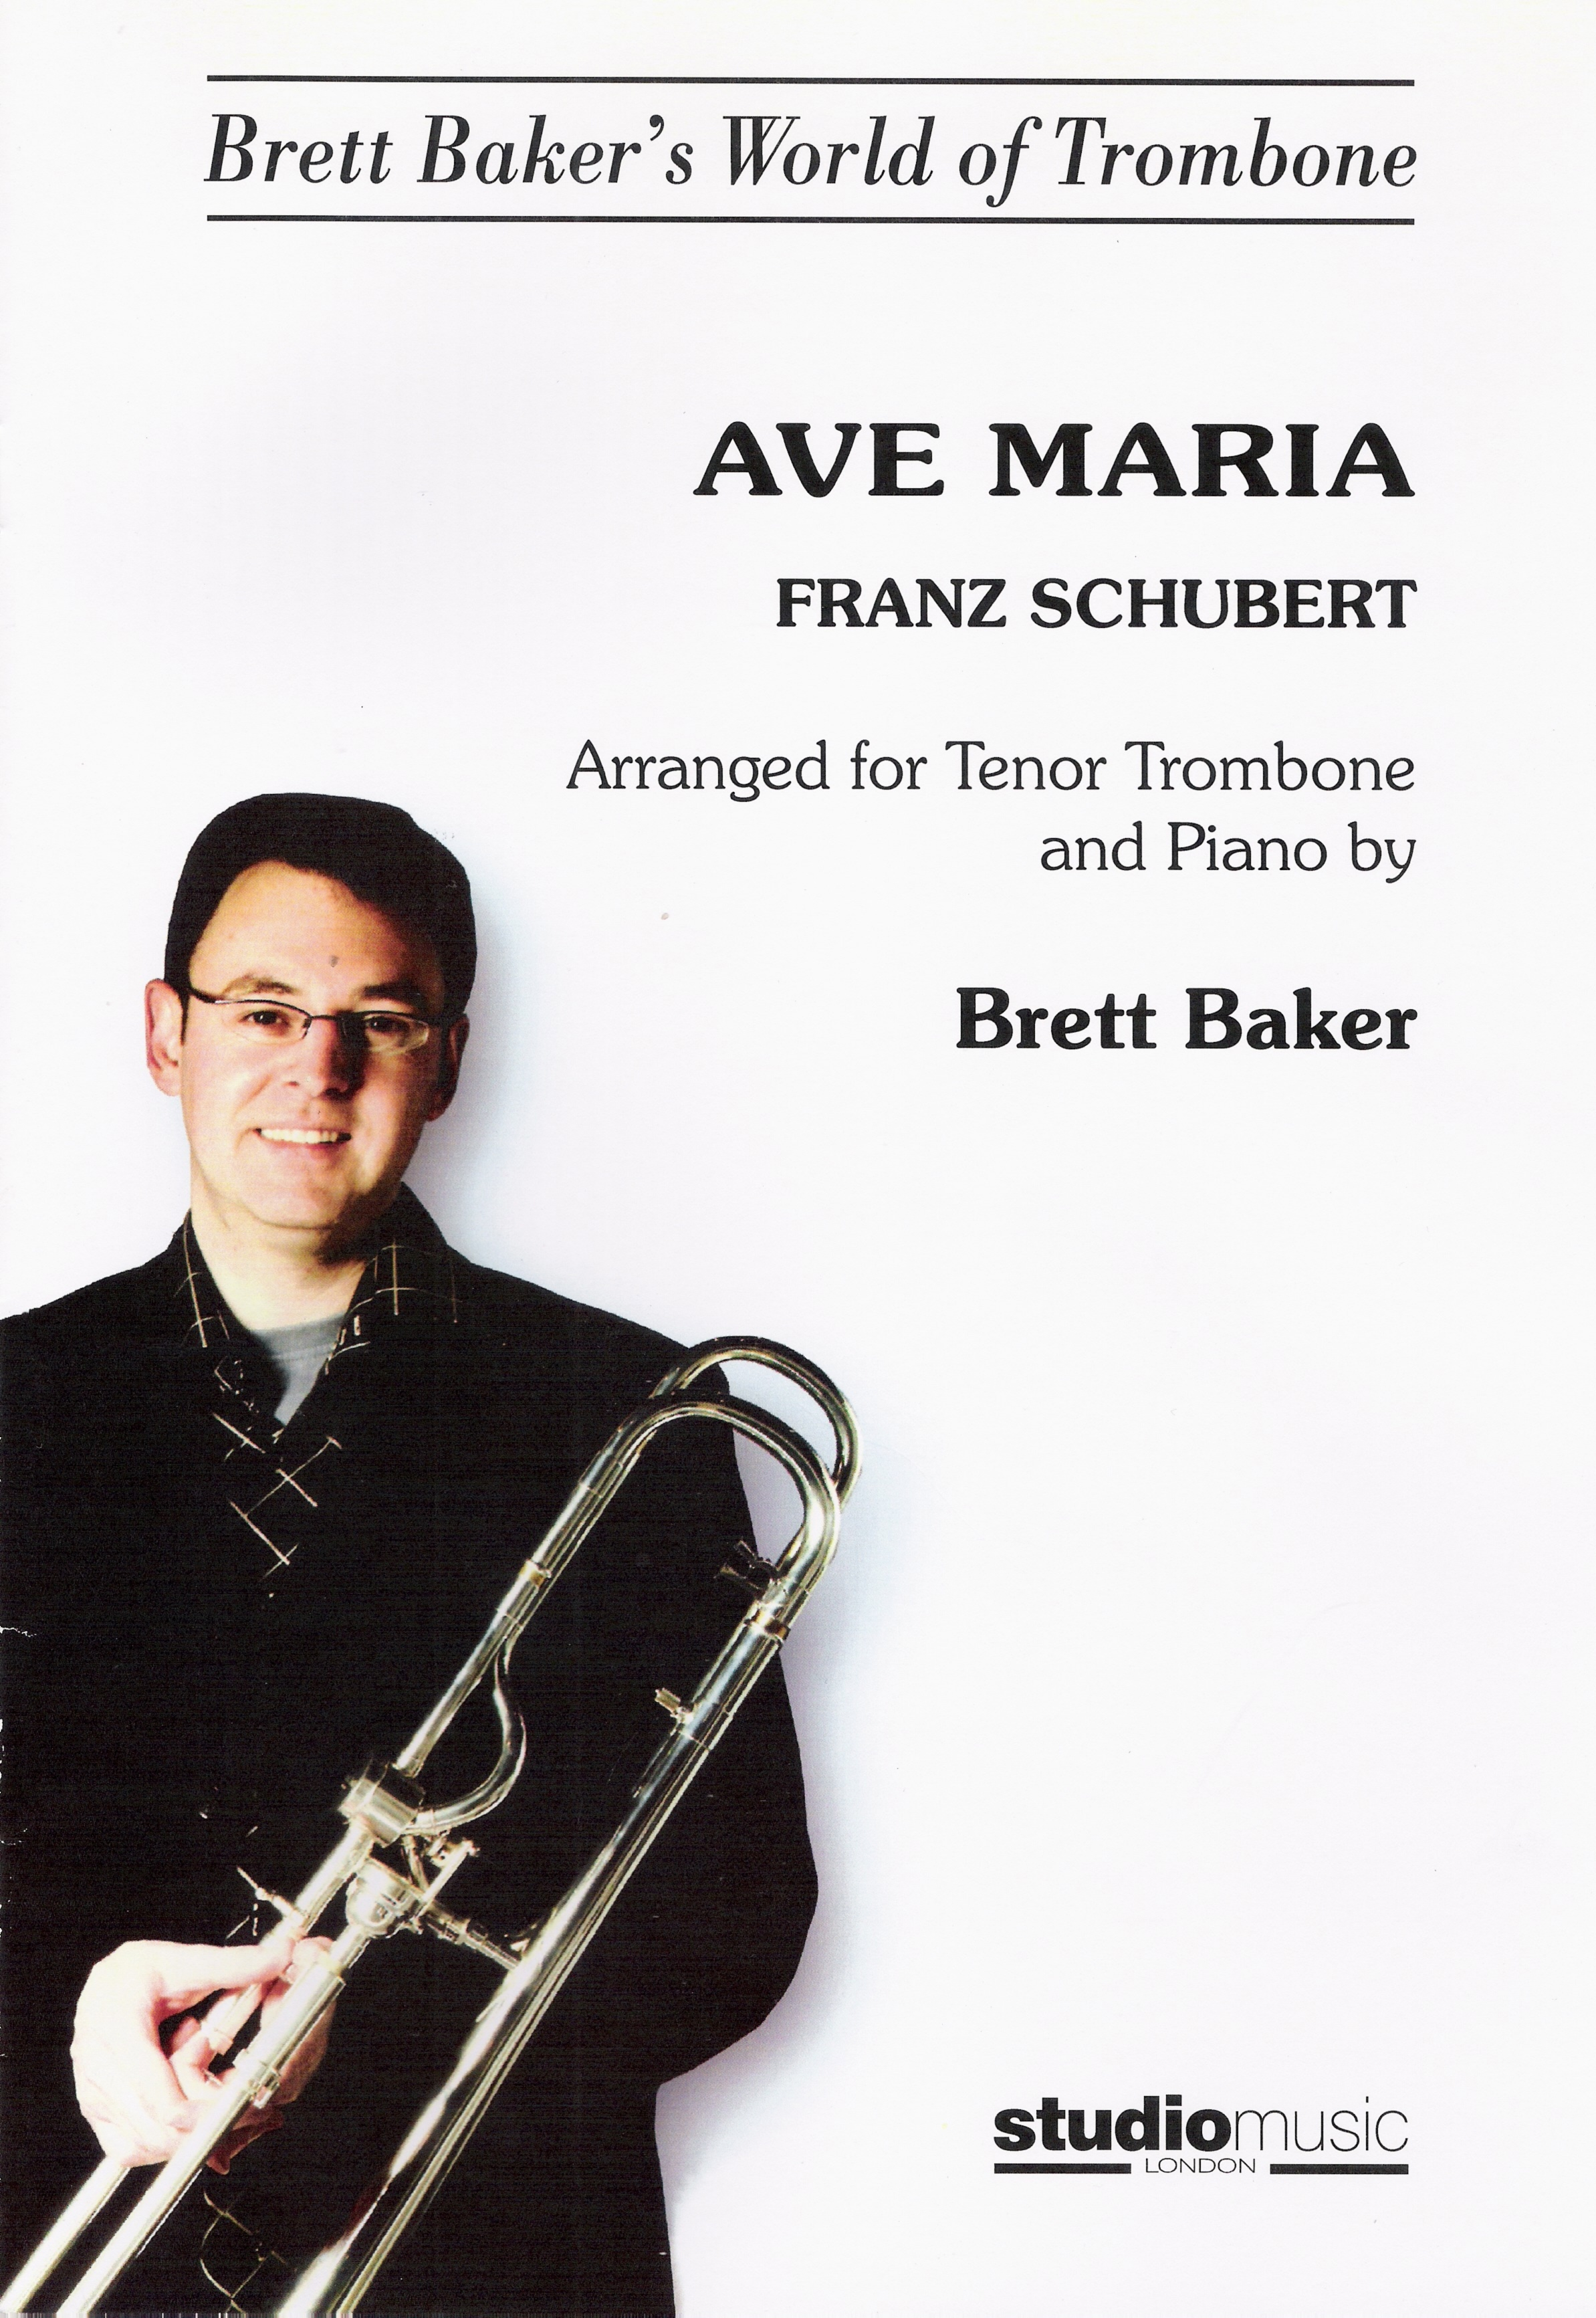 Sheet Music - Ave Maria arranged Brett Baker